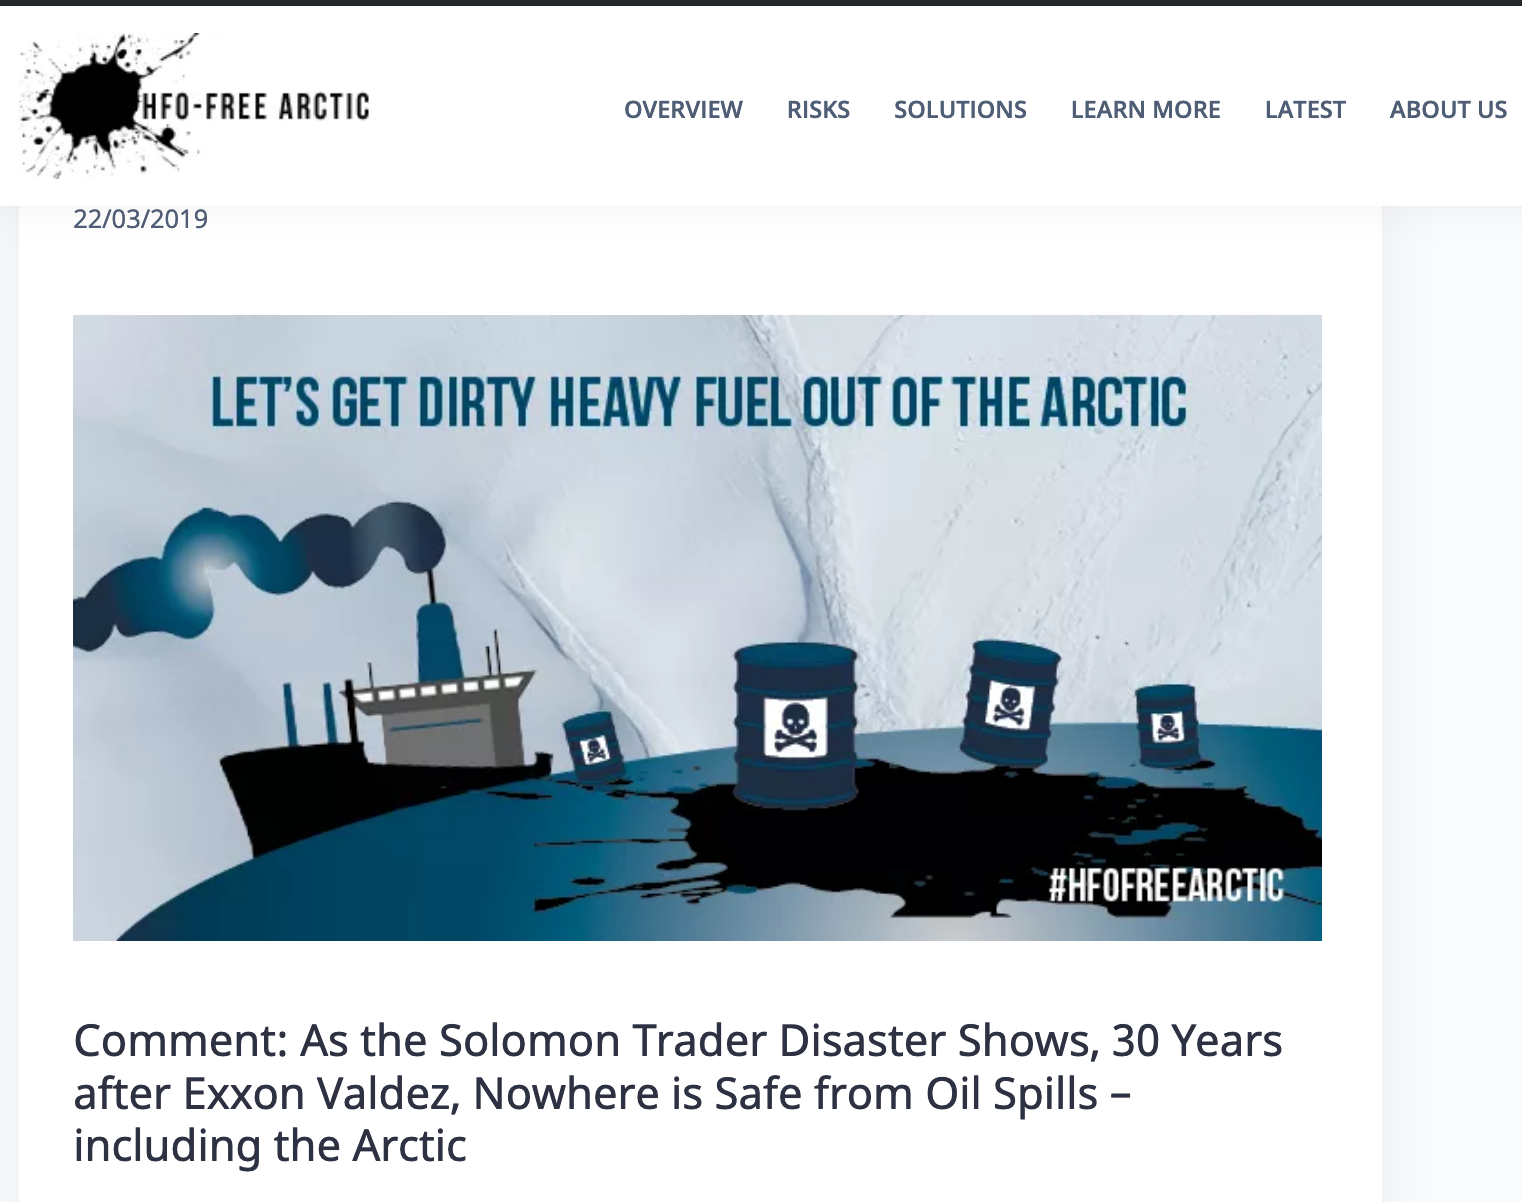 As the Solomon Trader Disaster Shows, 30 Years after Exxon Valdez, Nowhere is Safe from Oil Spills - including the Arctic